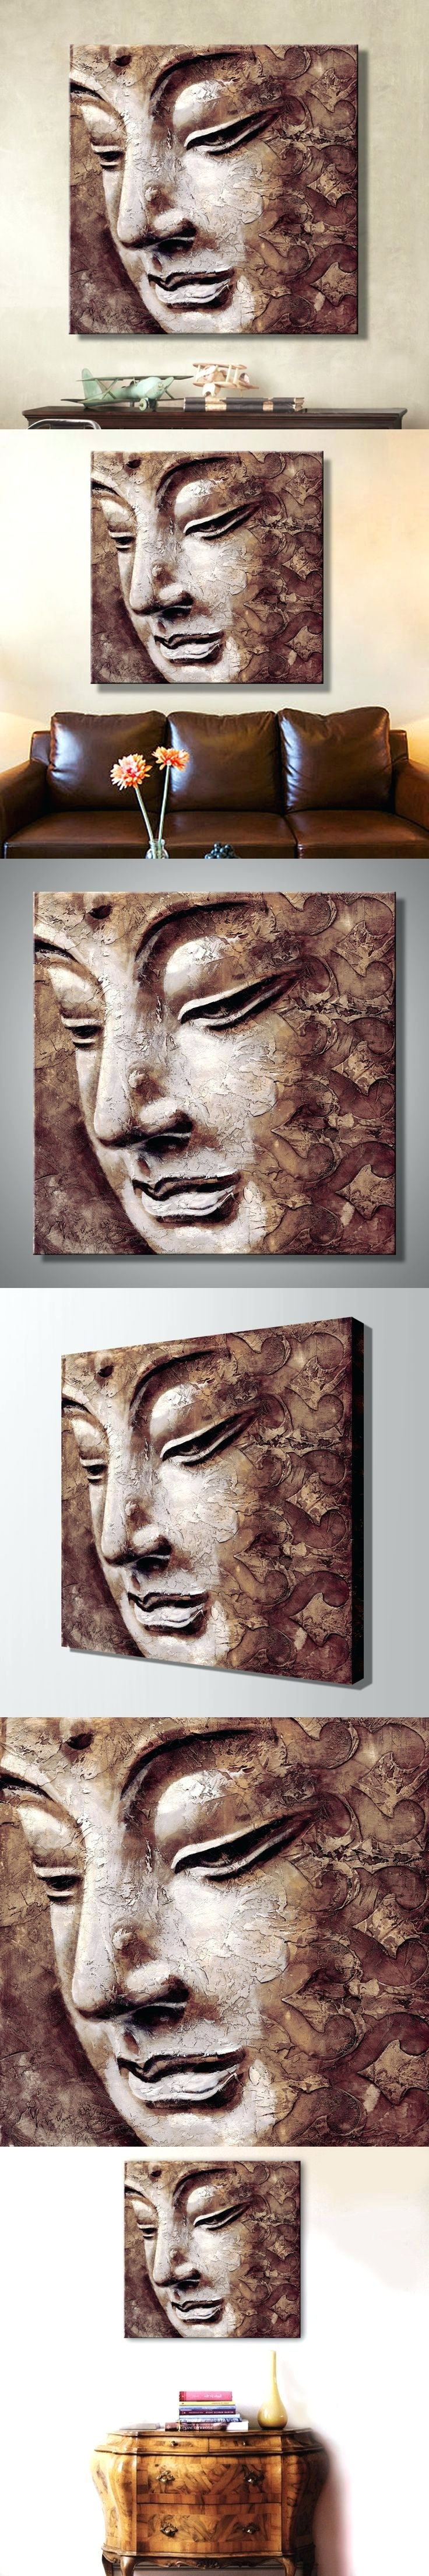 Most Popular 3D Buddha Wall Art Throughout Wall Arts ~ 3D Buddha Concave Wall Sculpture Large Buddha Face (View 7 of 15)